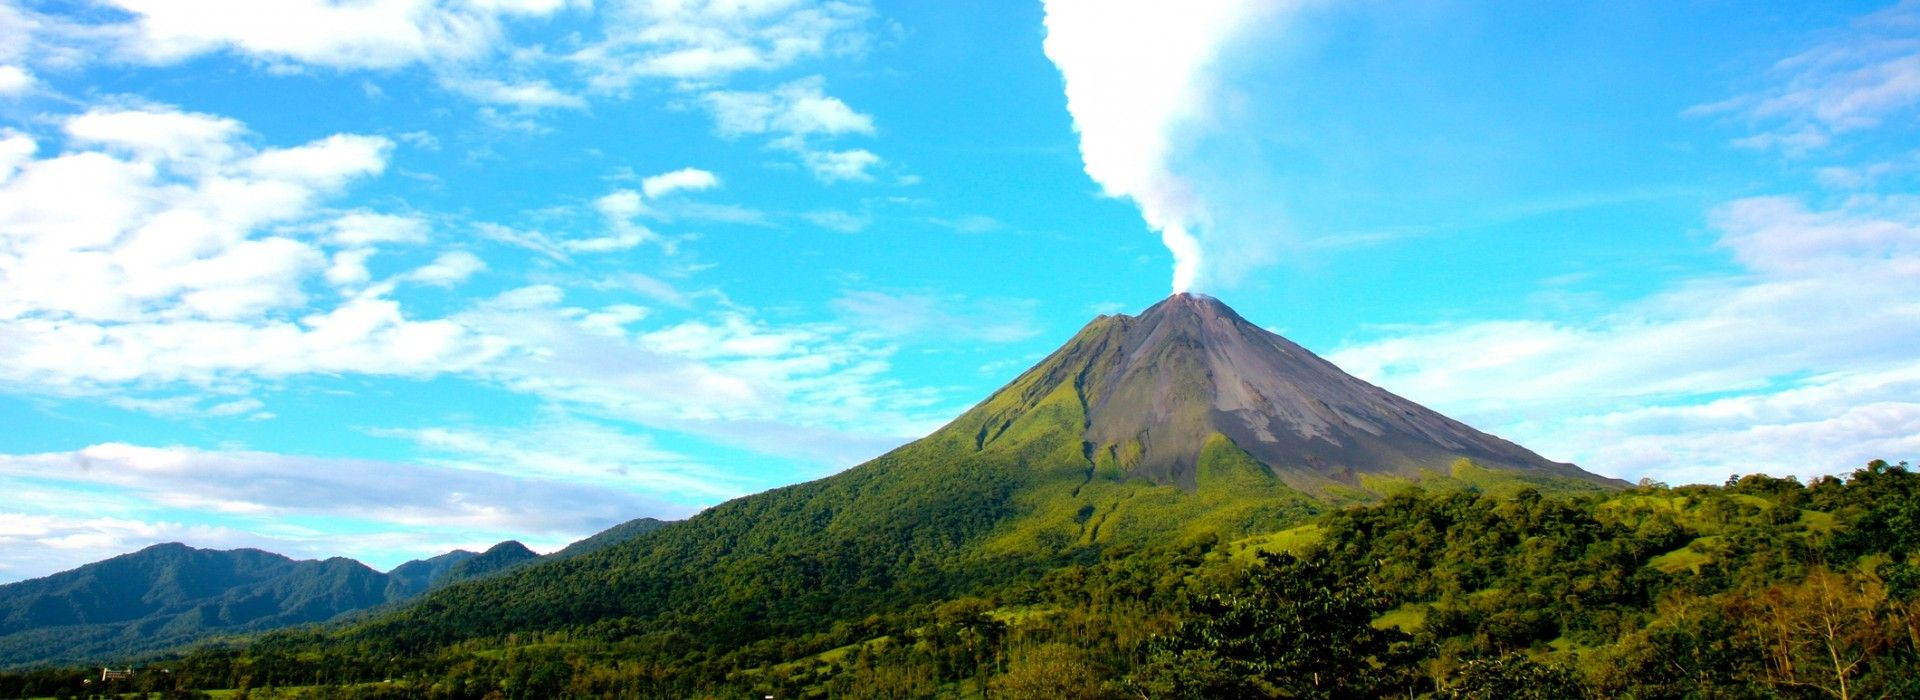 Countryside and village visits Tours in Costa Rica